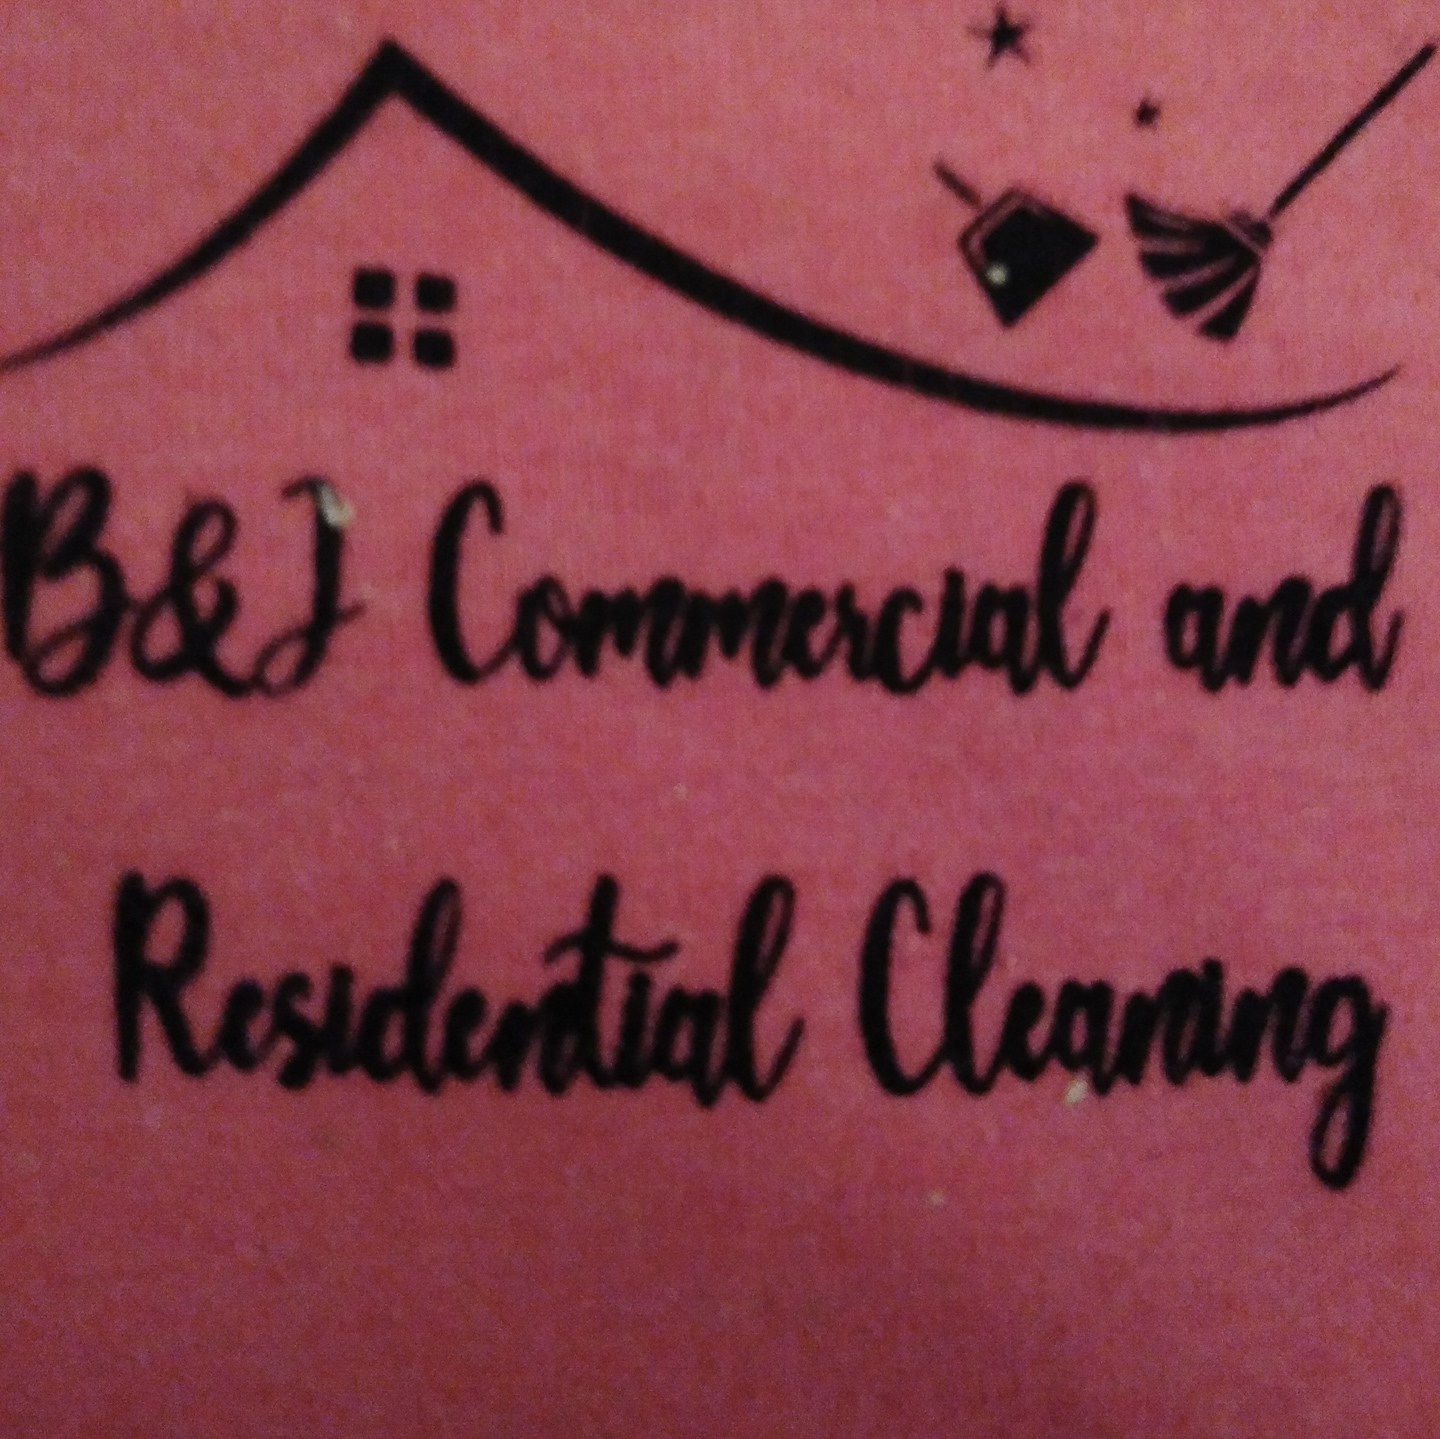 B&J commercial and residential cleaning